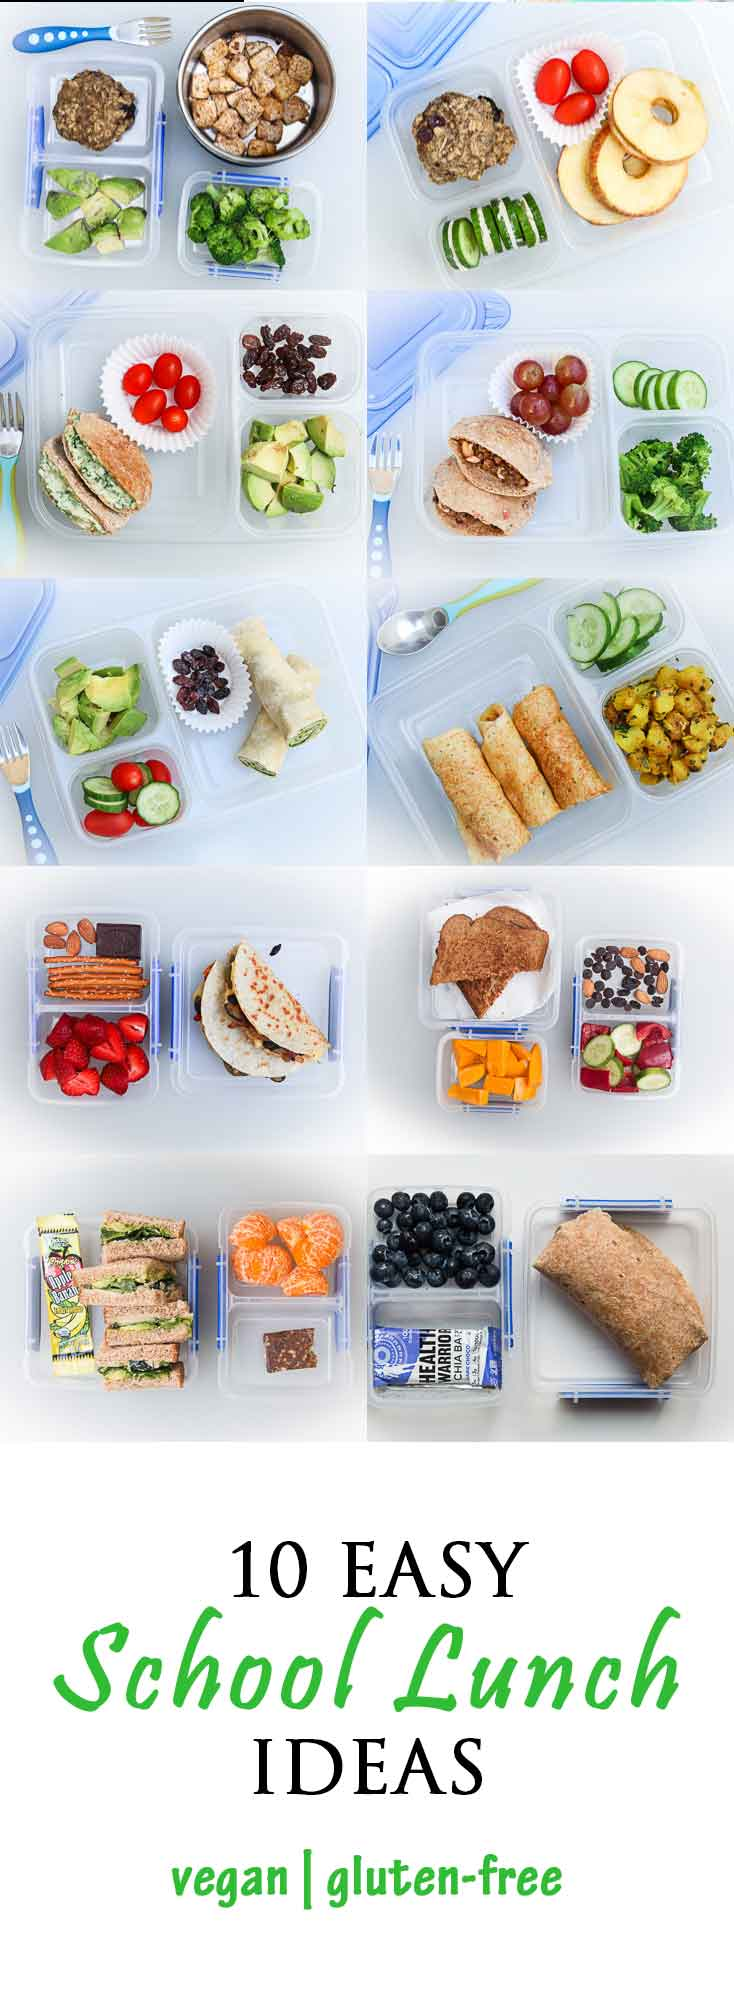 10 Easy School Lunch Ideas Vegan Vegetarian Gastronomy